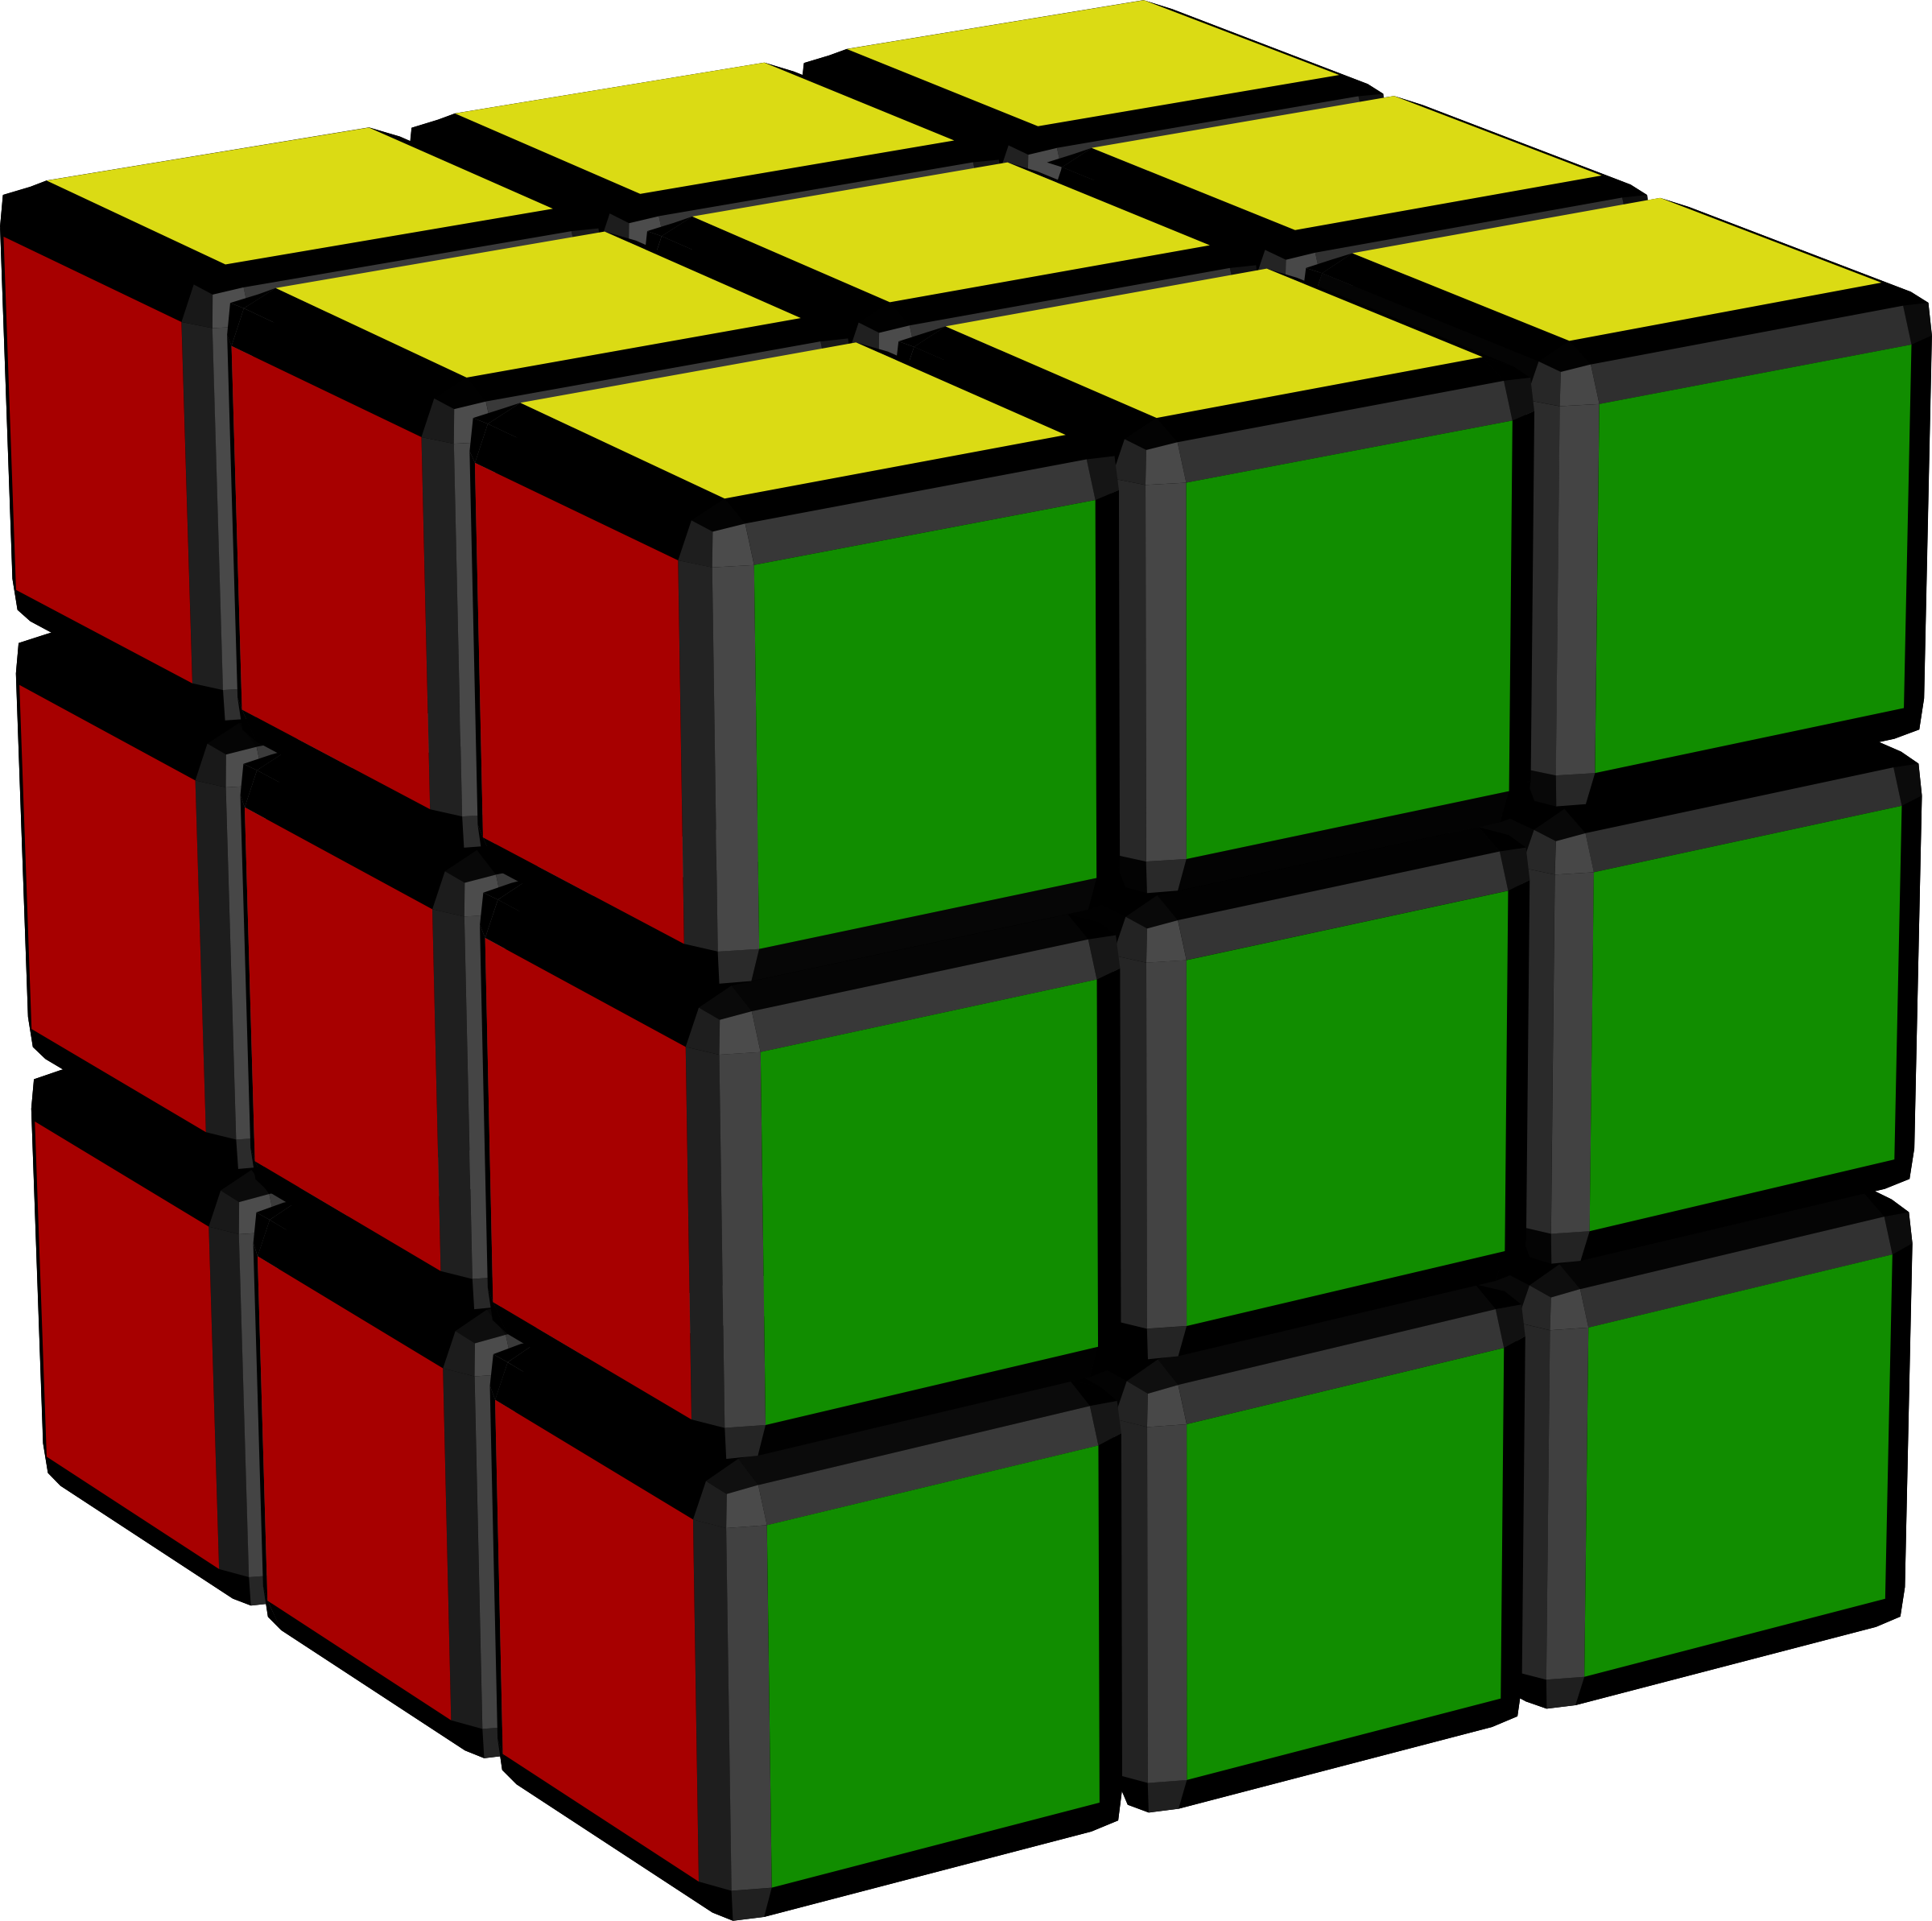 Rubik clipart puzzle cube. Pin by udash on